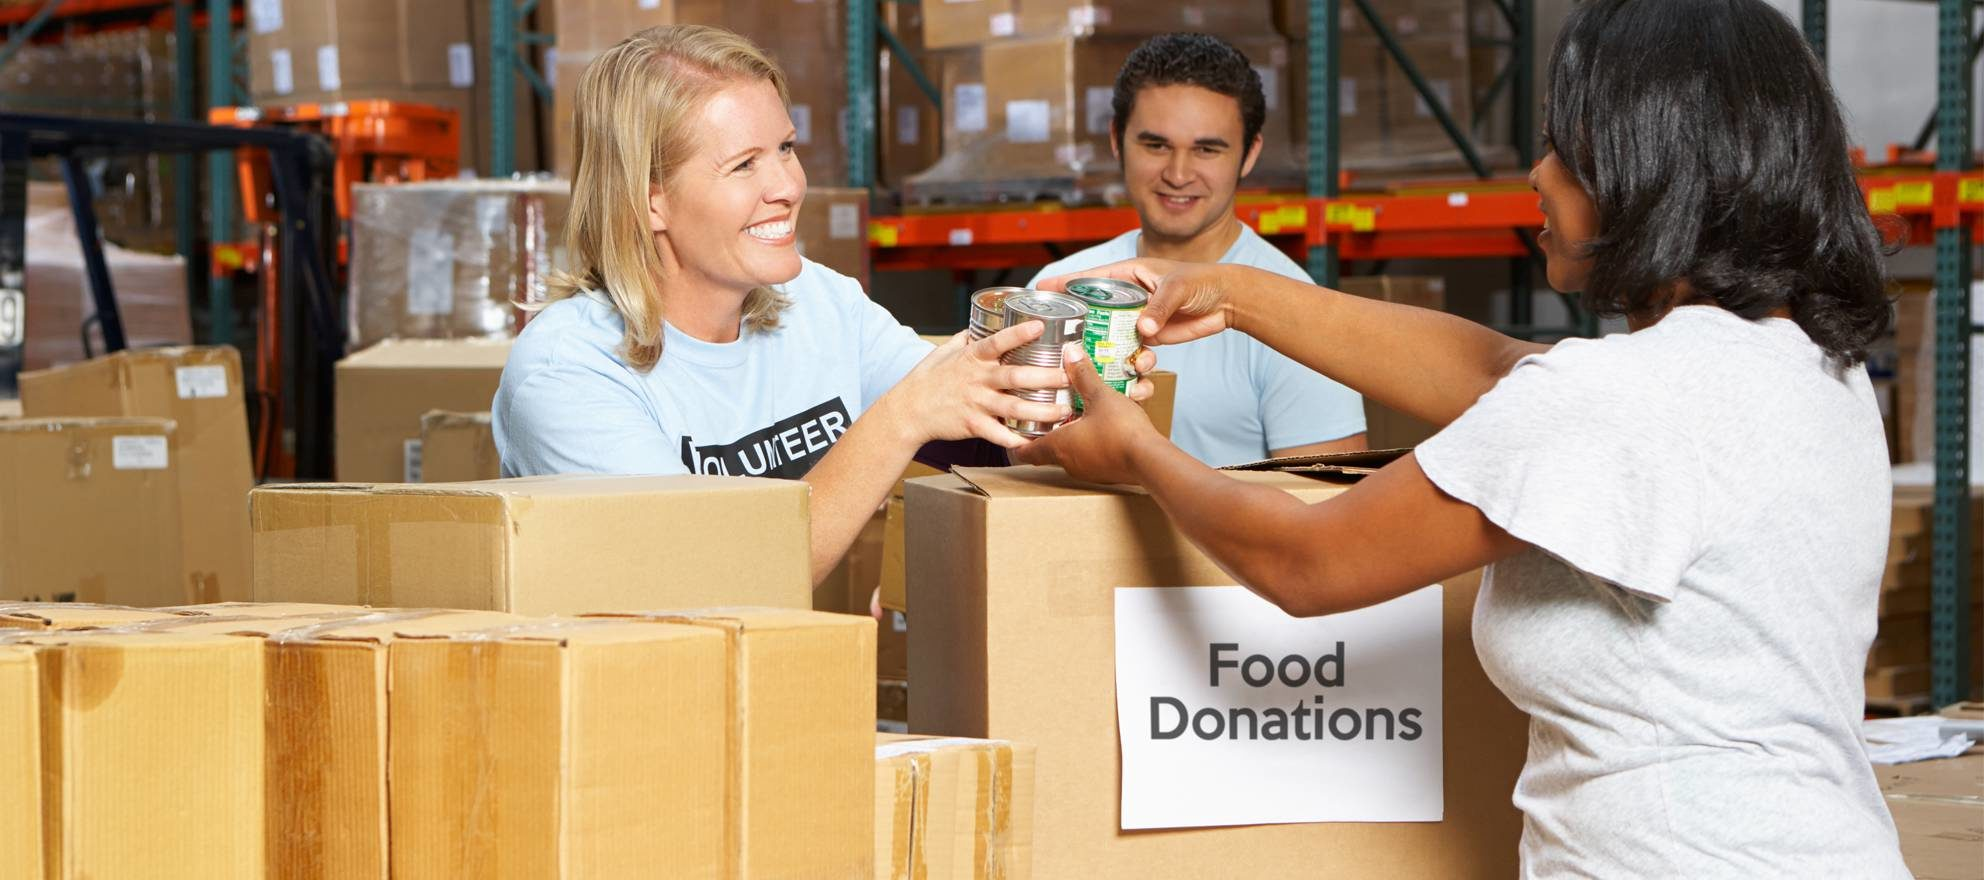 It's the giving season: 6 tips to get in the spirit